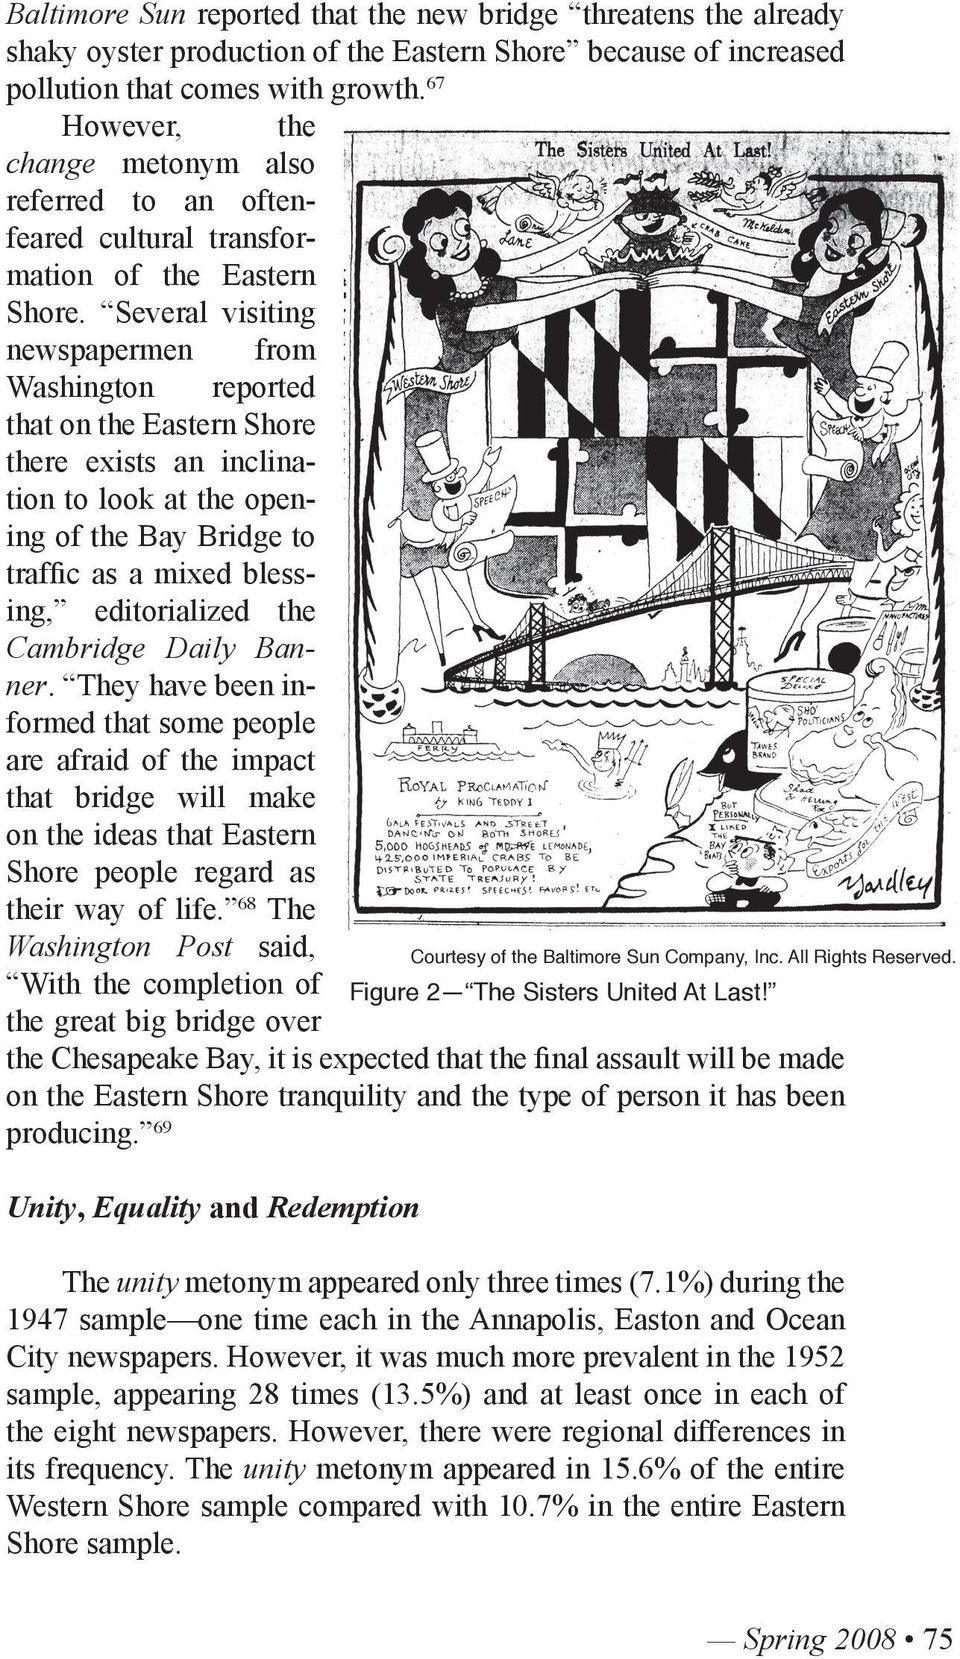 Several visiting newspapermen from Washington reported that on the Eastern Shore there exists an inclination to look at the opening of the Bay Bridge to traffic as a mixed blessing, editorialized the